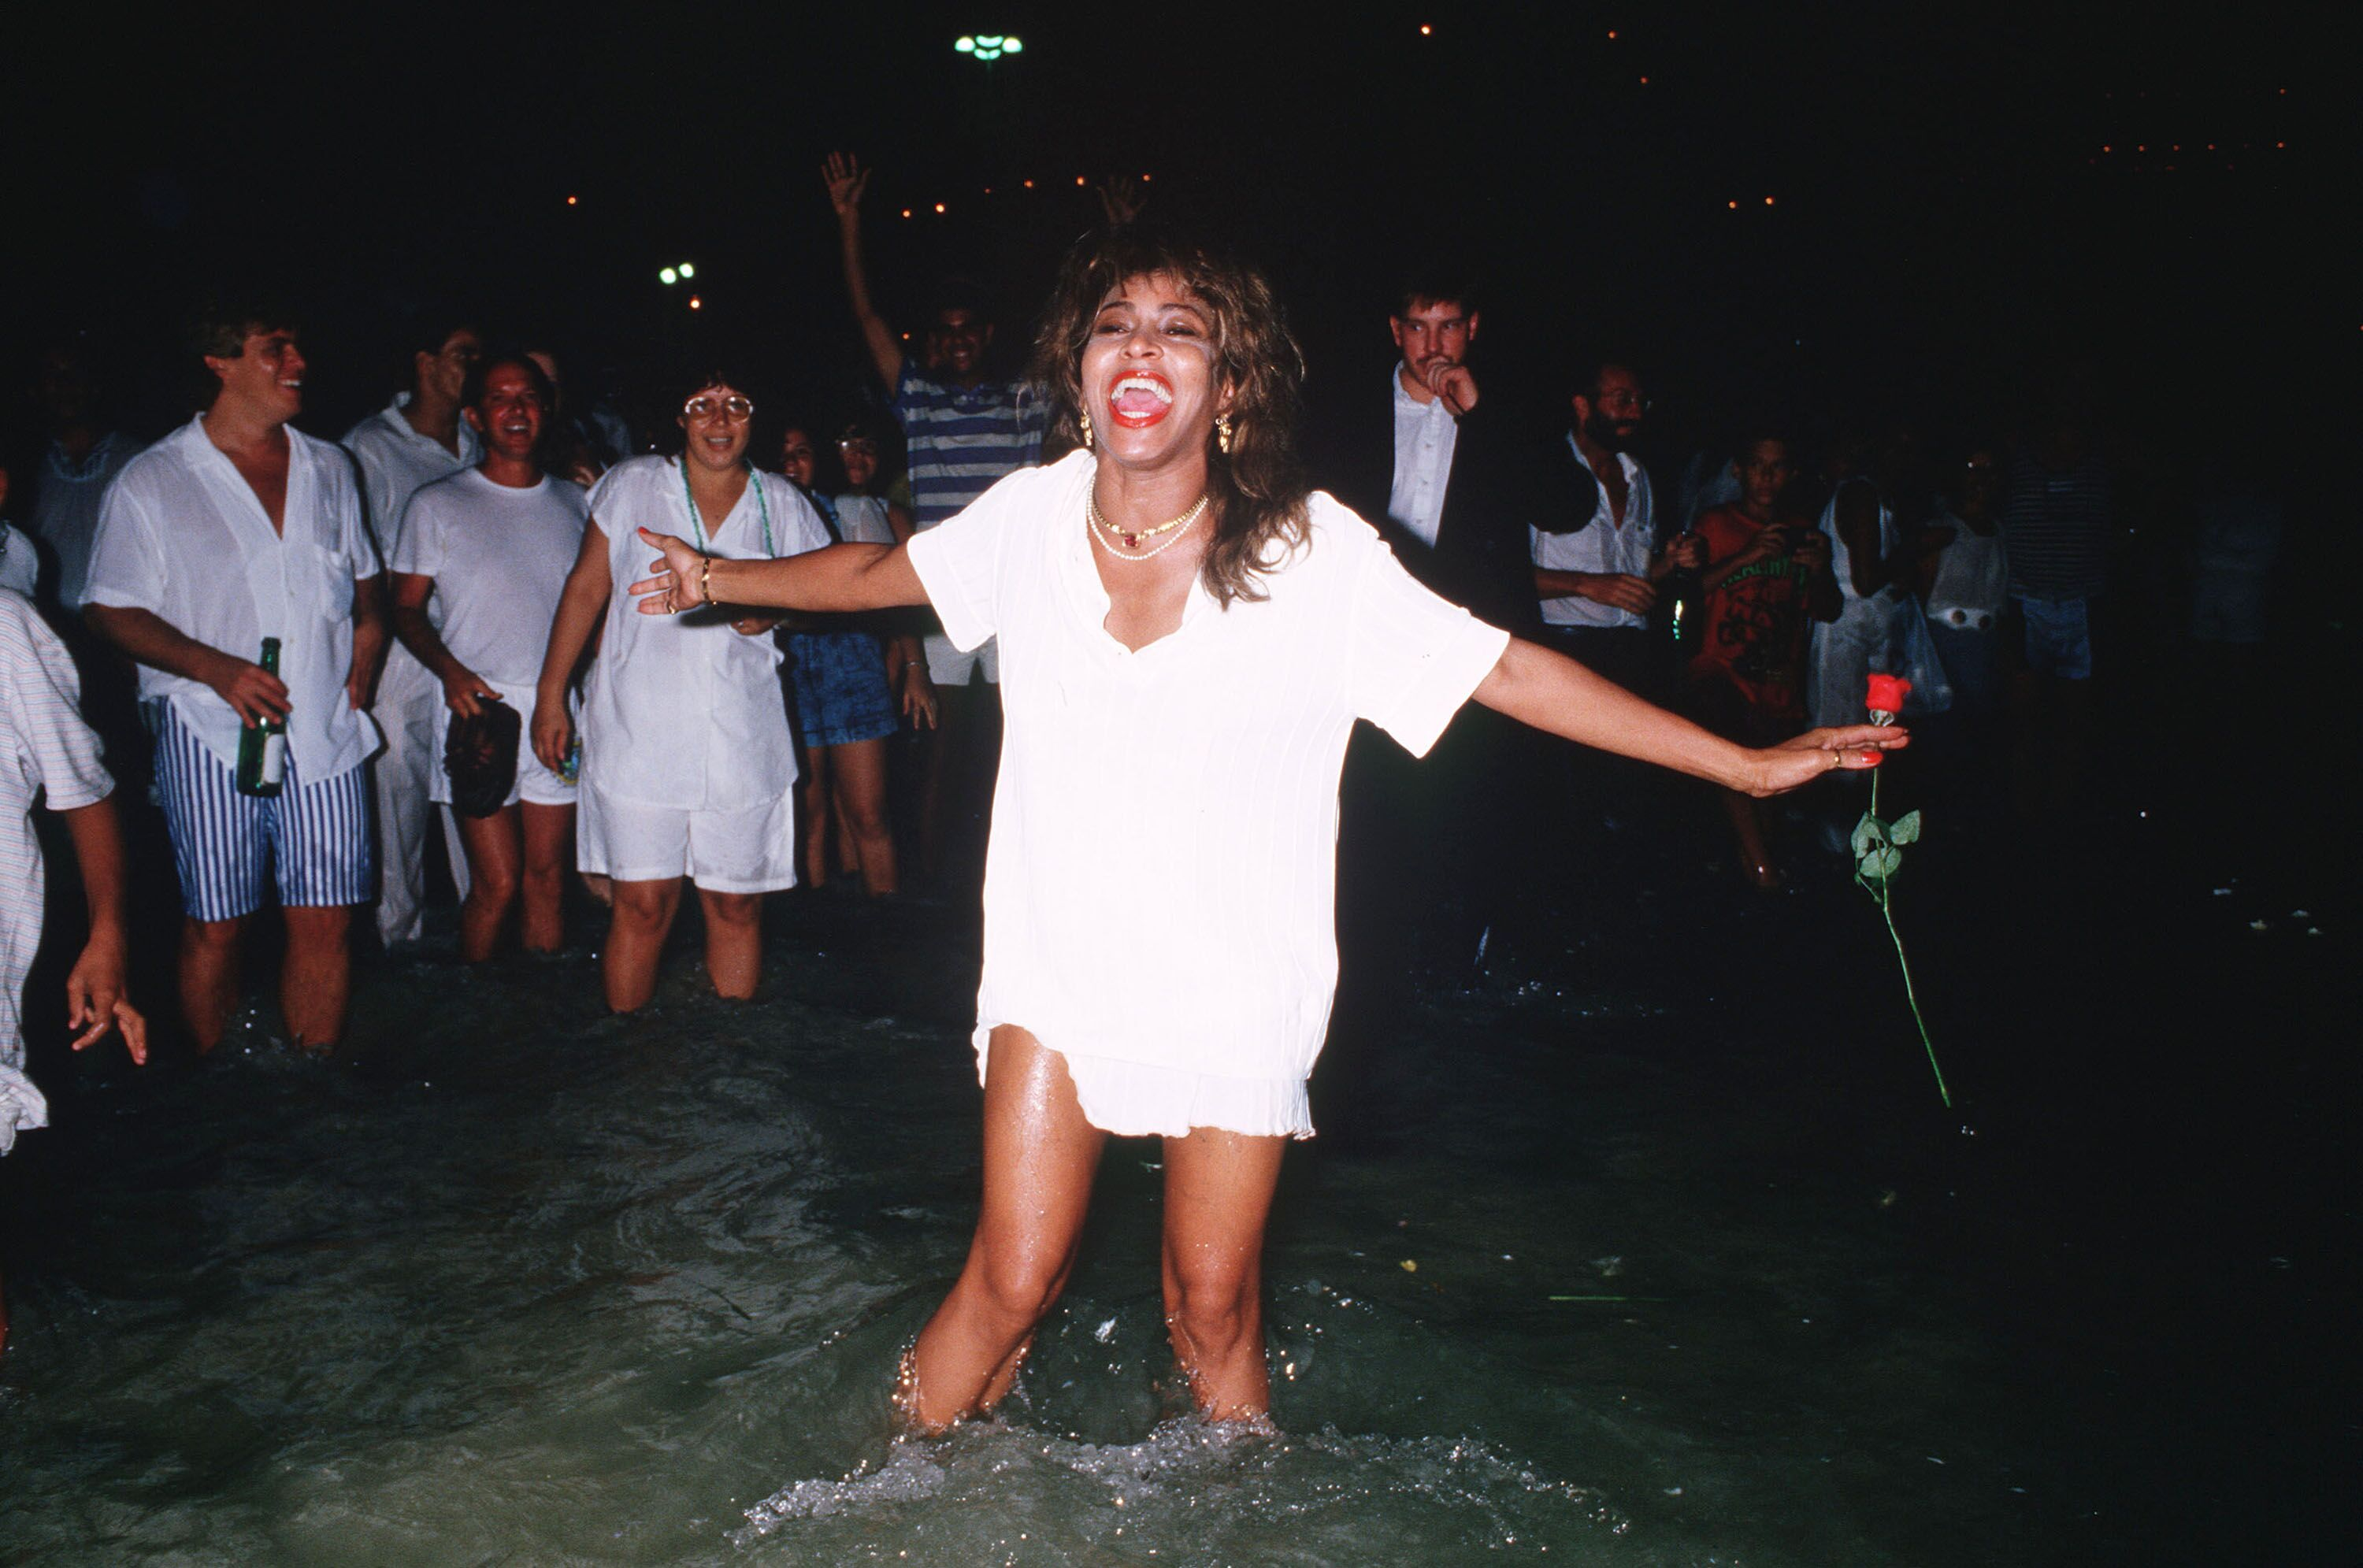 Tina Turner enjoying life as it is by the water | Source: Getty Images/GlobalImagesUkraine